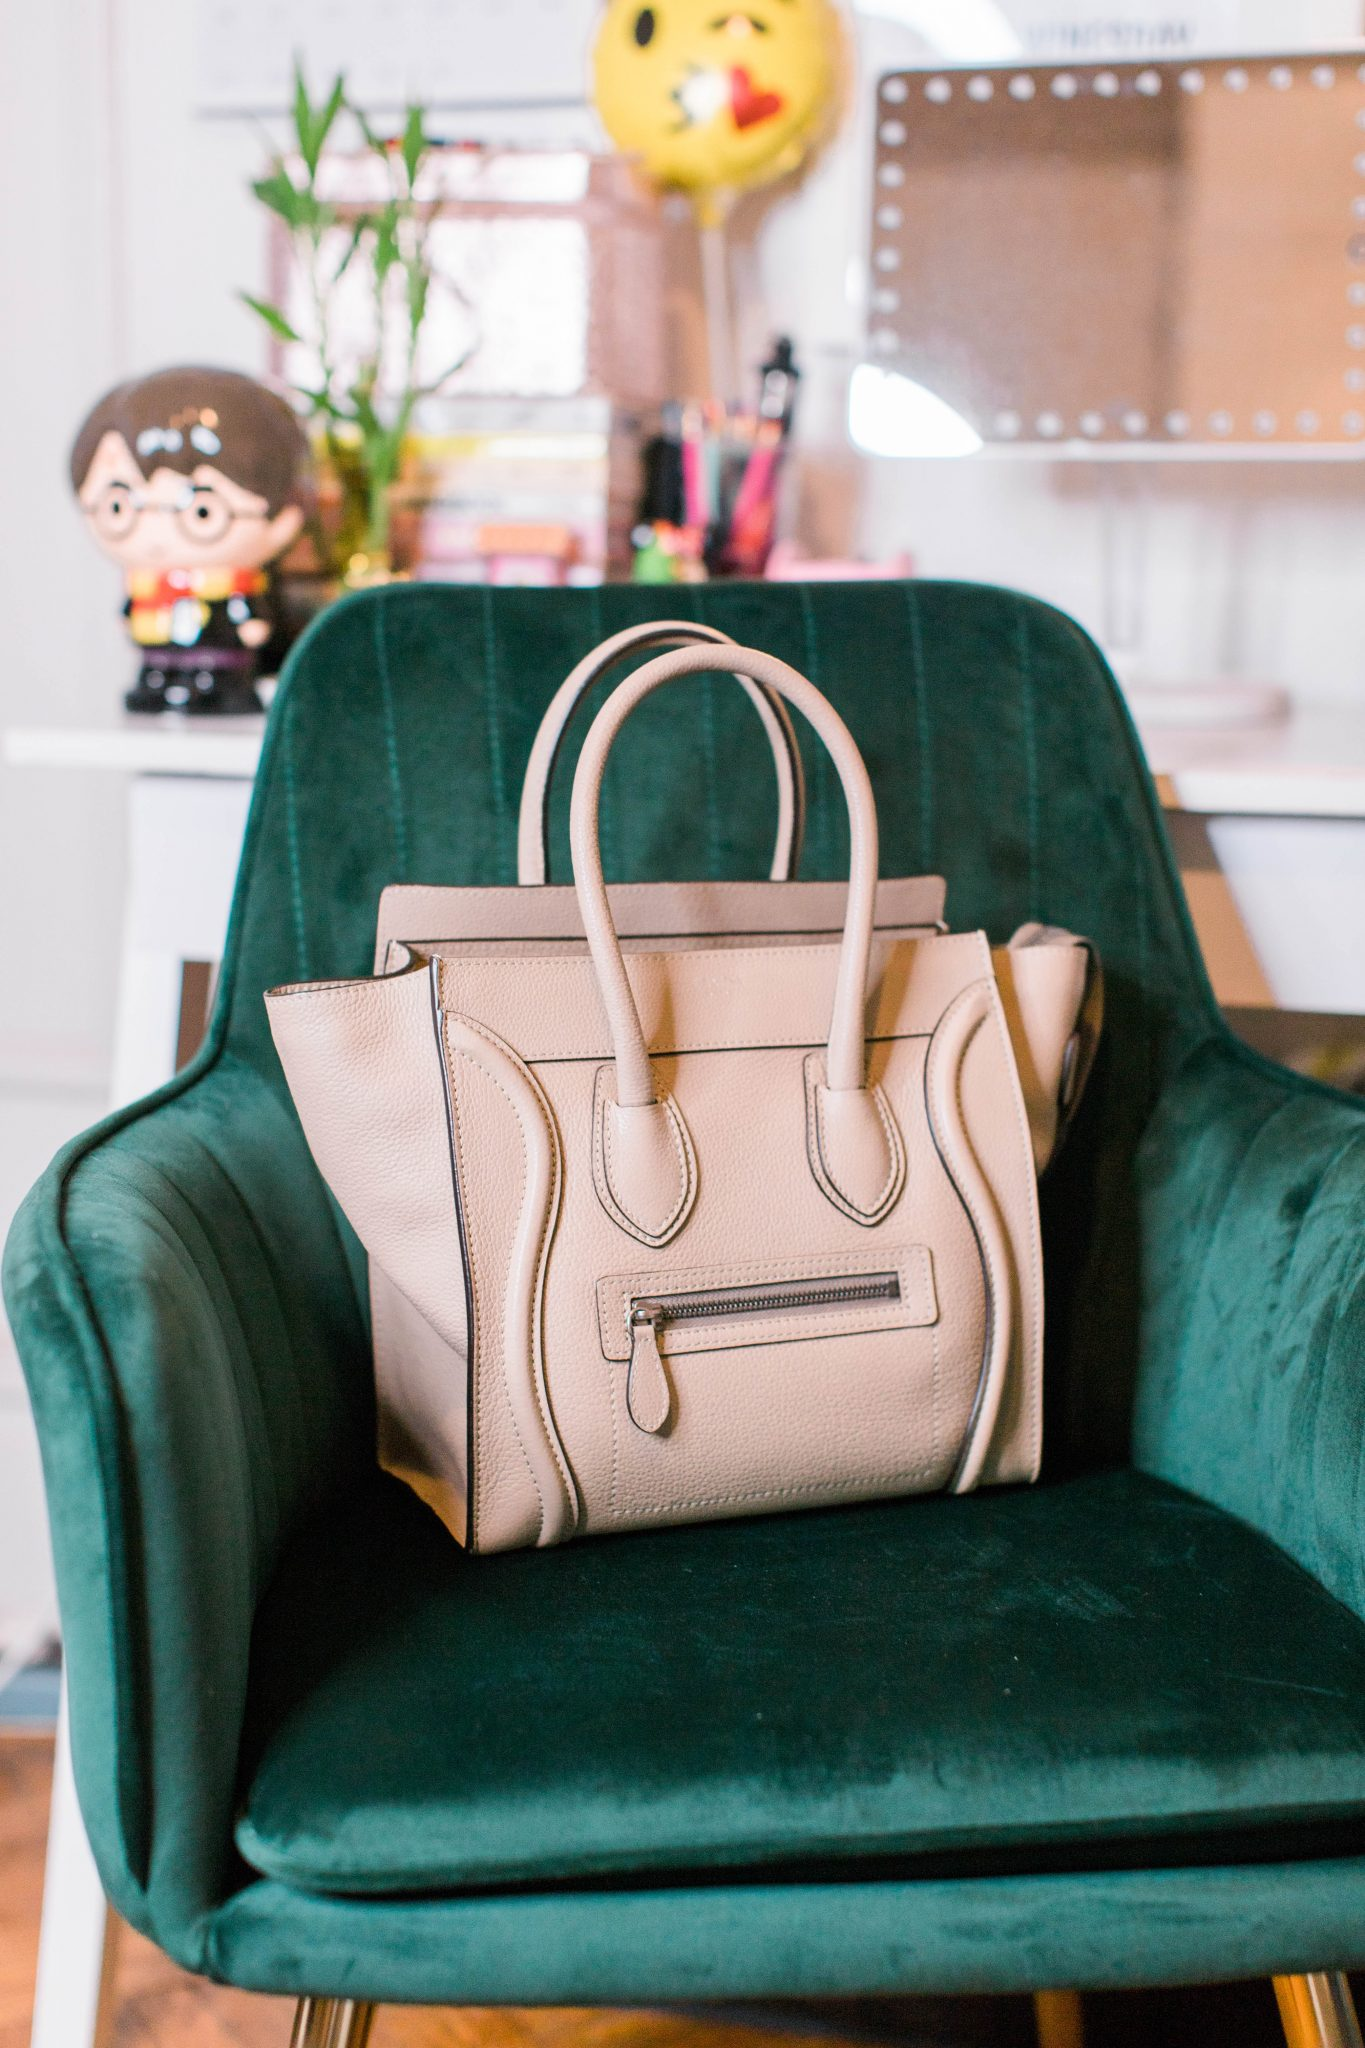 Luxury Accessories featured by US fashion blogger Live Laugh Linda